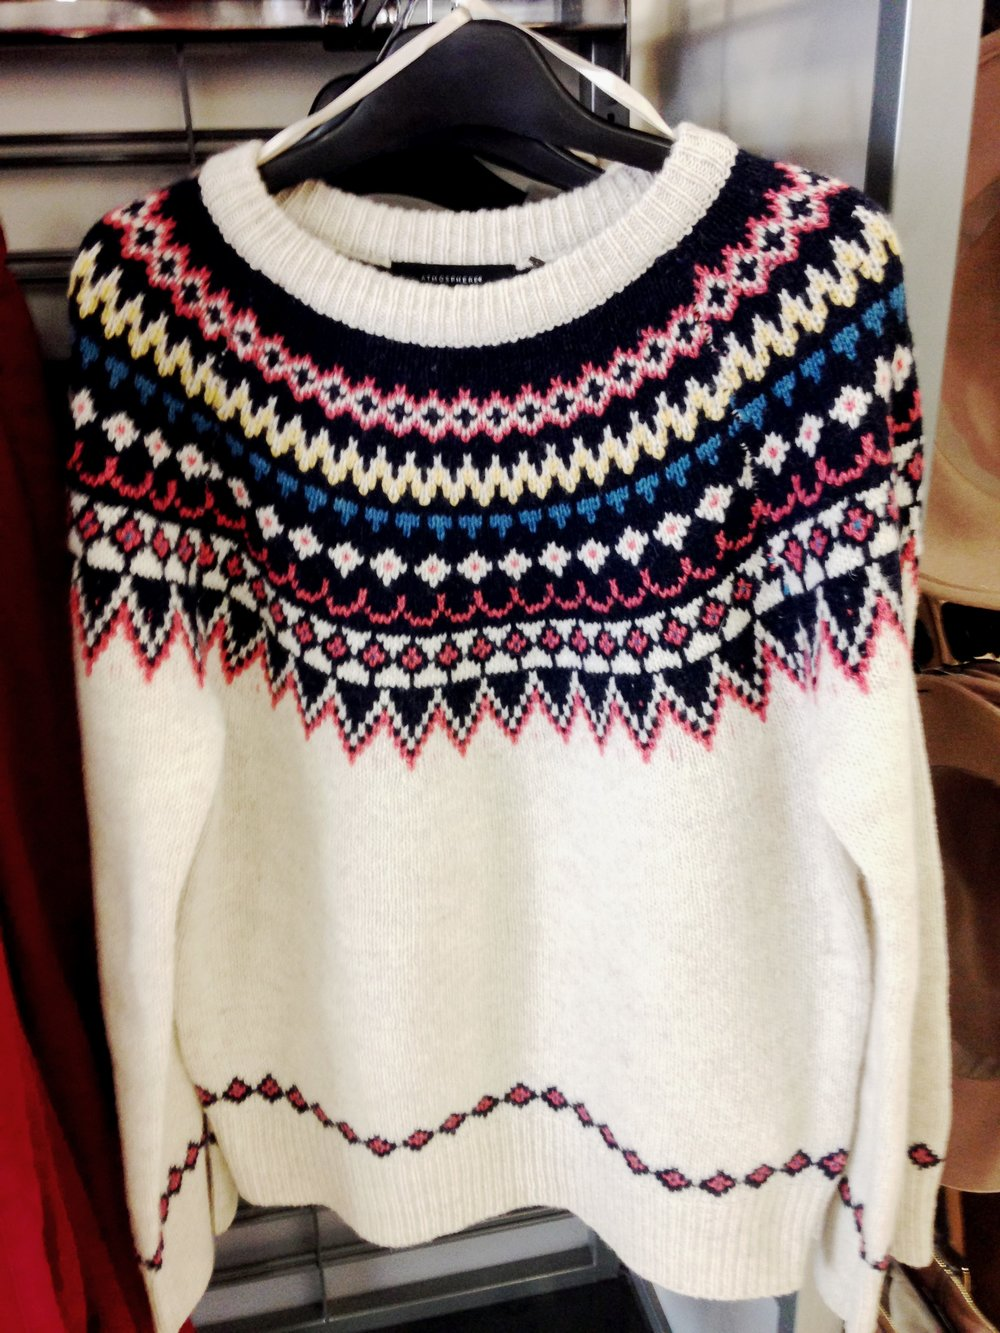 Penneys traditional style sweater. Great value at €18. Also available in navy.